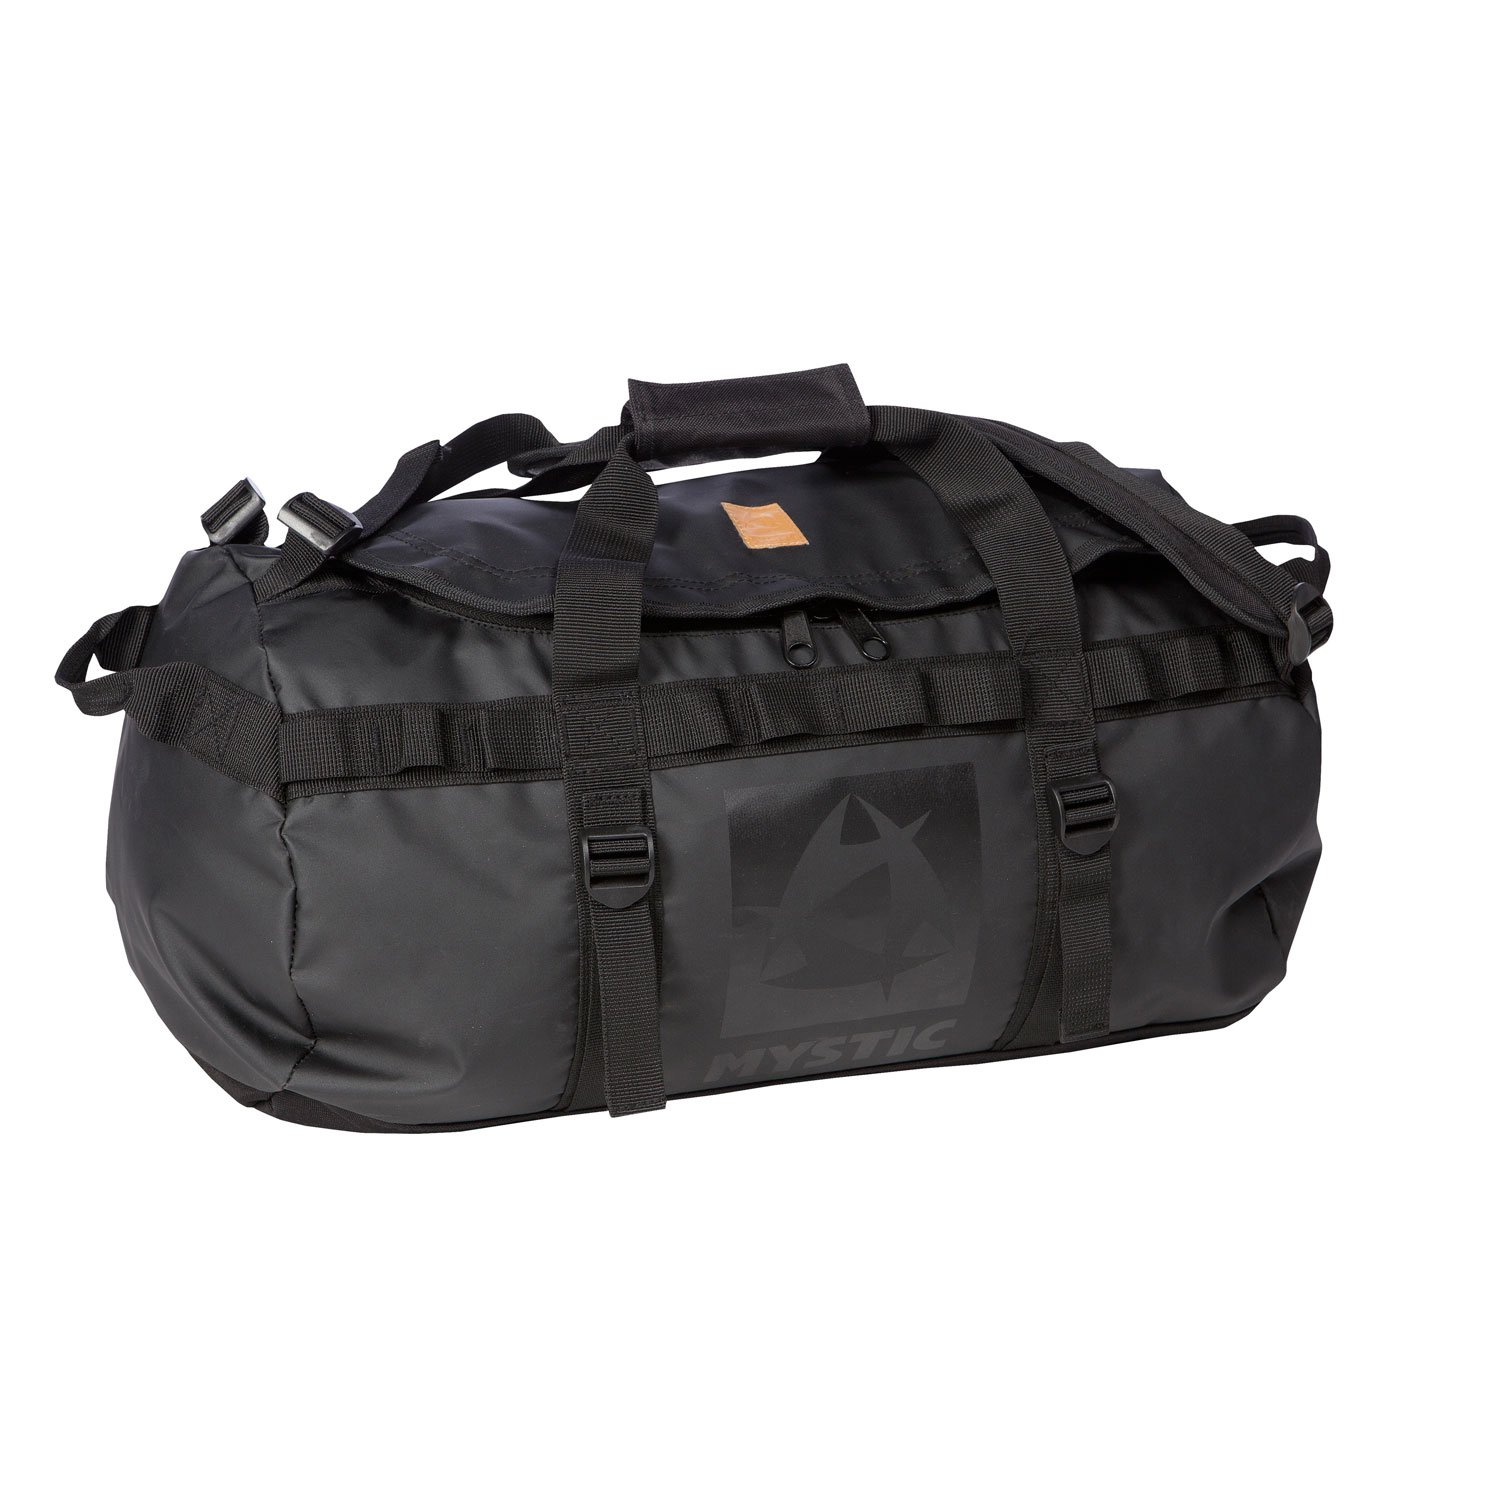 1c9f95ef97a6 Mystic Semi Dry Sports Holdall Backpack 32L BLACK 140585  Amazon.co.uk   Sports   Outdoors